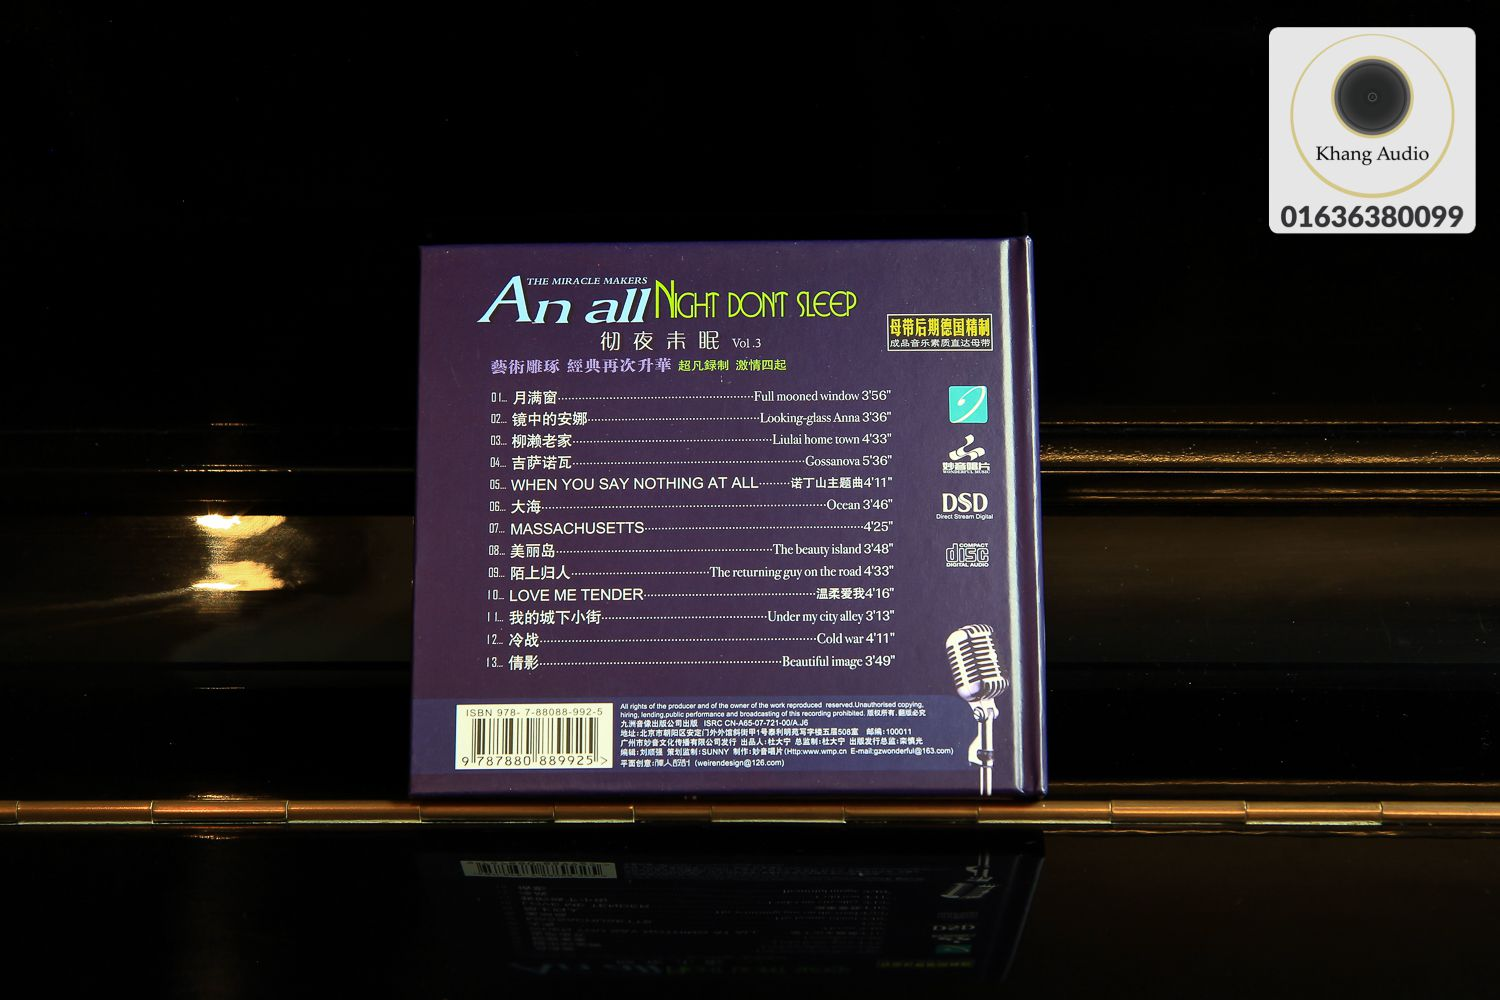 An All Night Don't Sleep Vol 3 - The Miracle Makers Khang Audio 0336380099